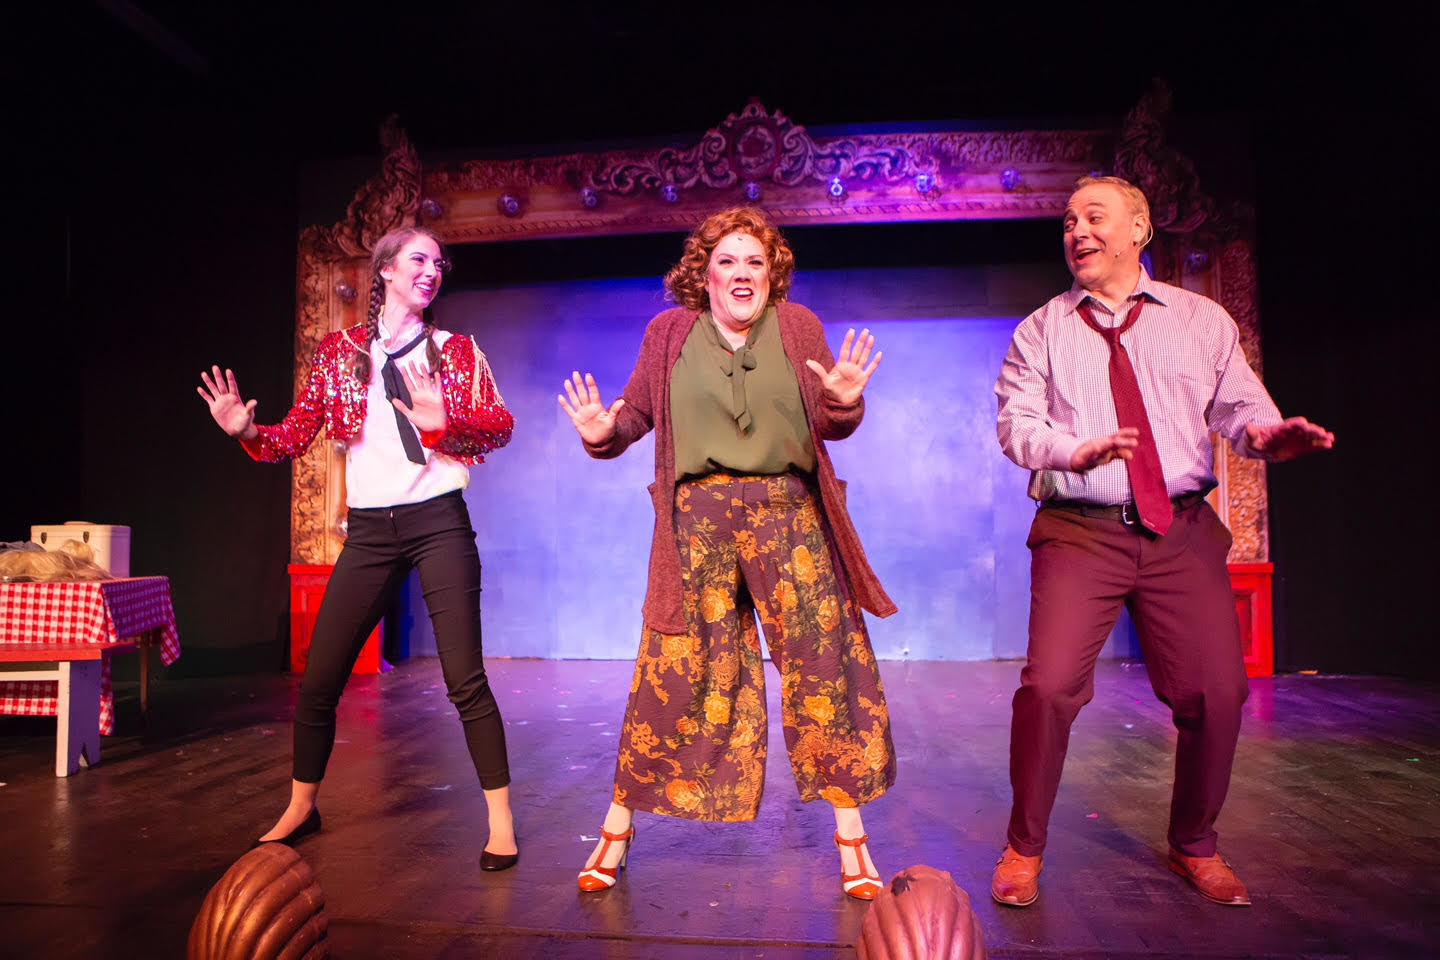 BWW Review: Let GYPSY Entertain You at The Firehouse Theatre